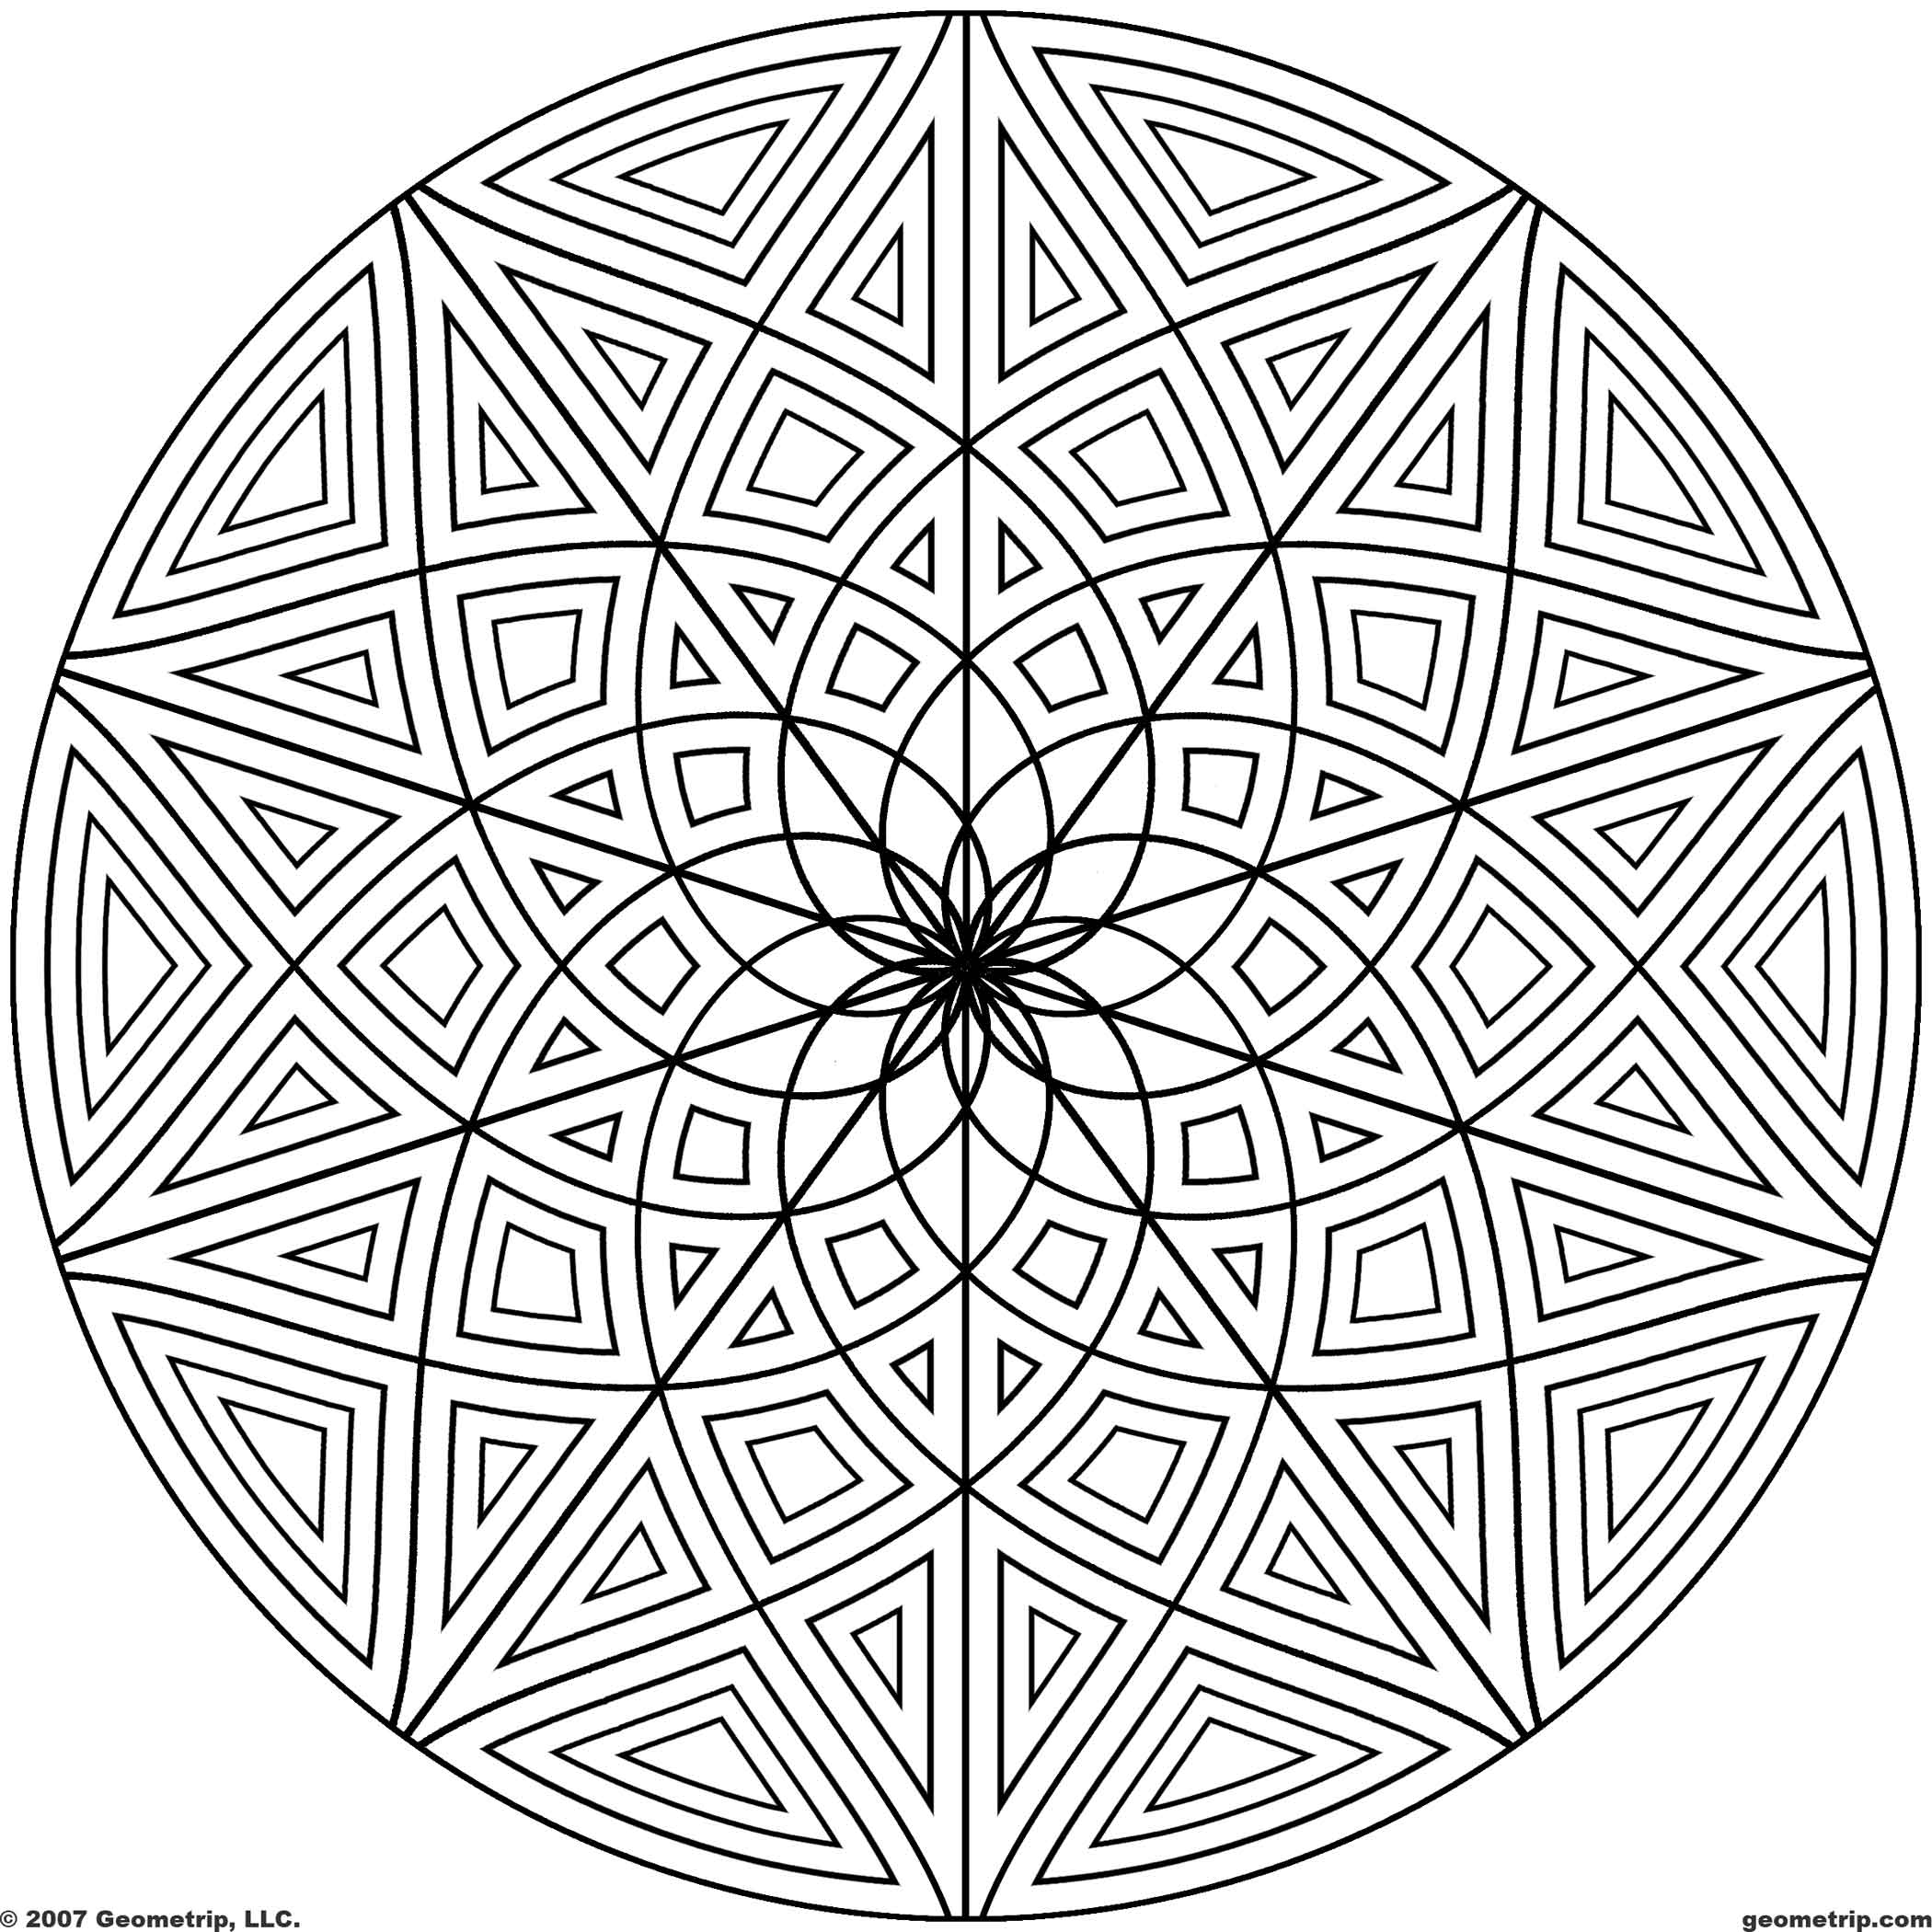 coloring pages for adults patterns free printable geometric coloring pages for adults for pages adults patterns coloring